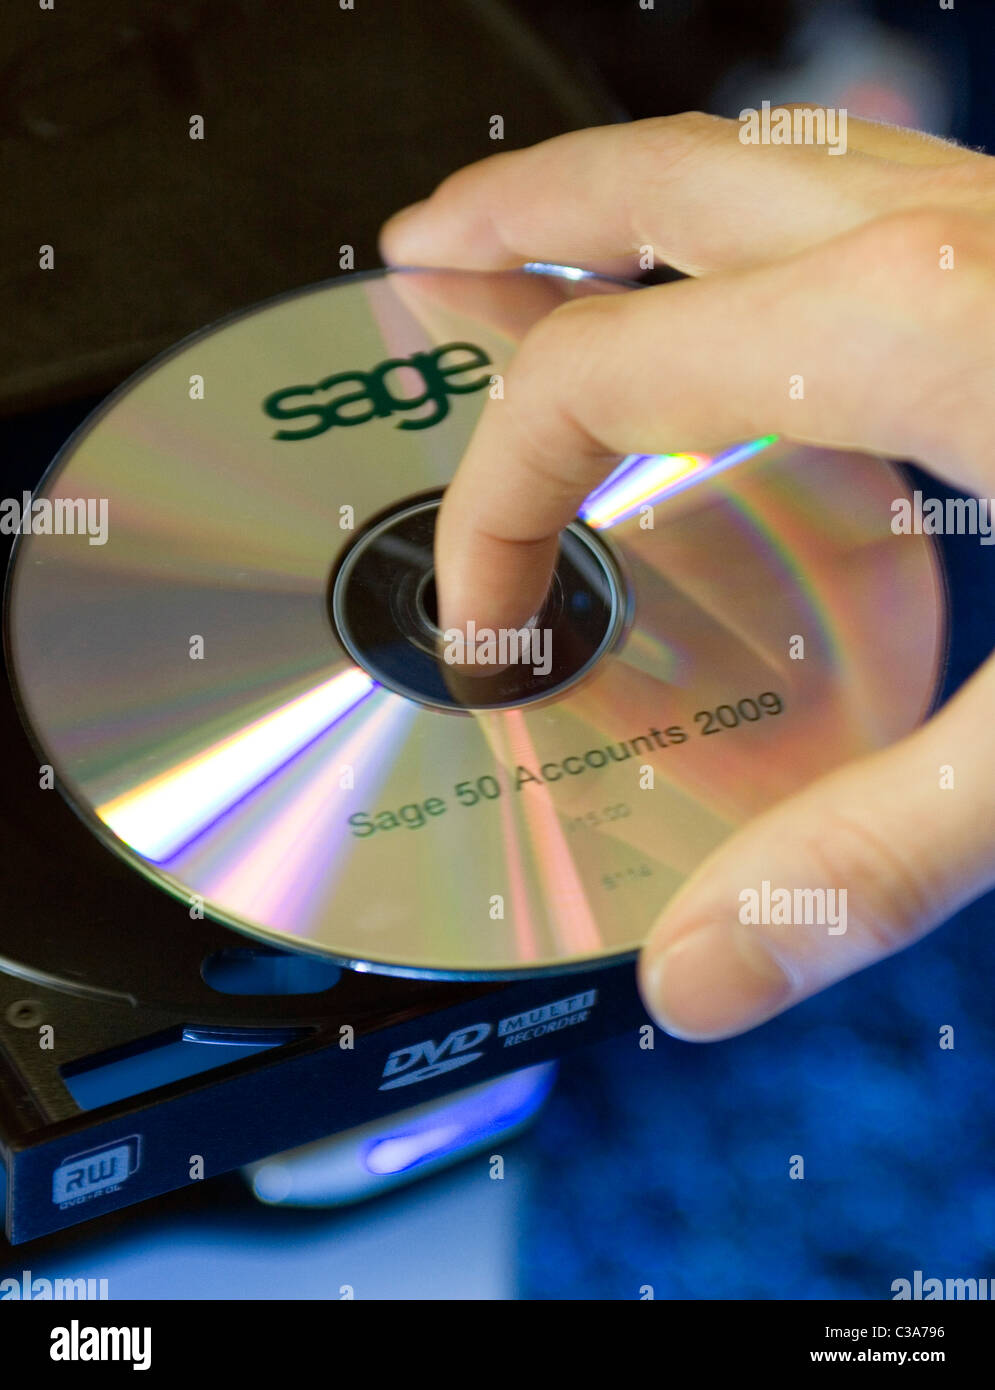 Sage '50 Accounts 2009' installation DVD being placed into PC DVD tray - Stock Image